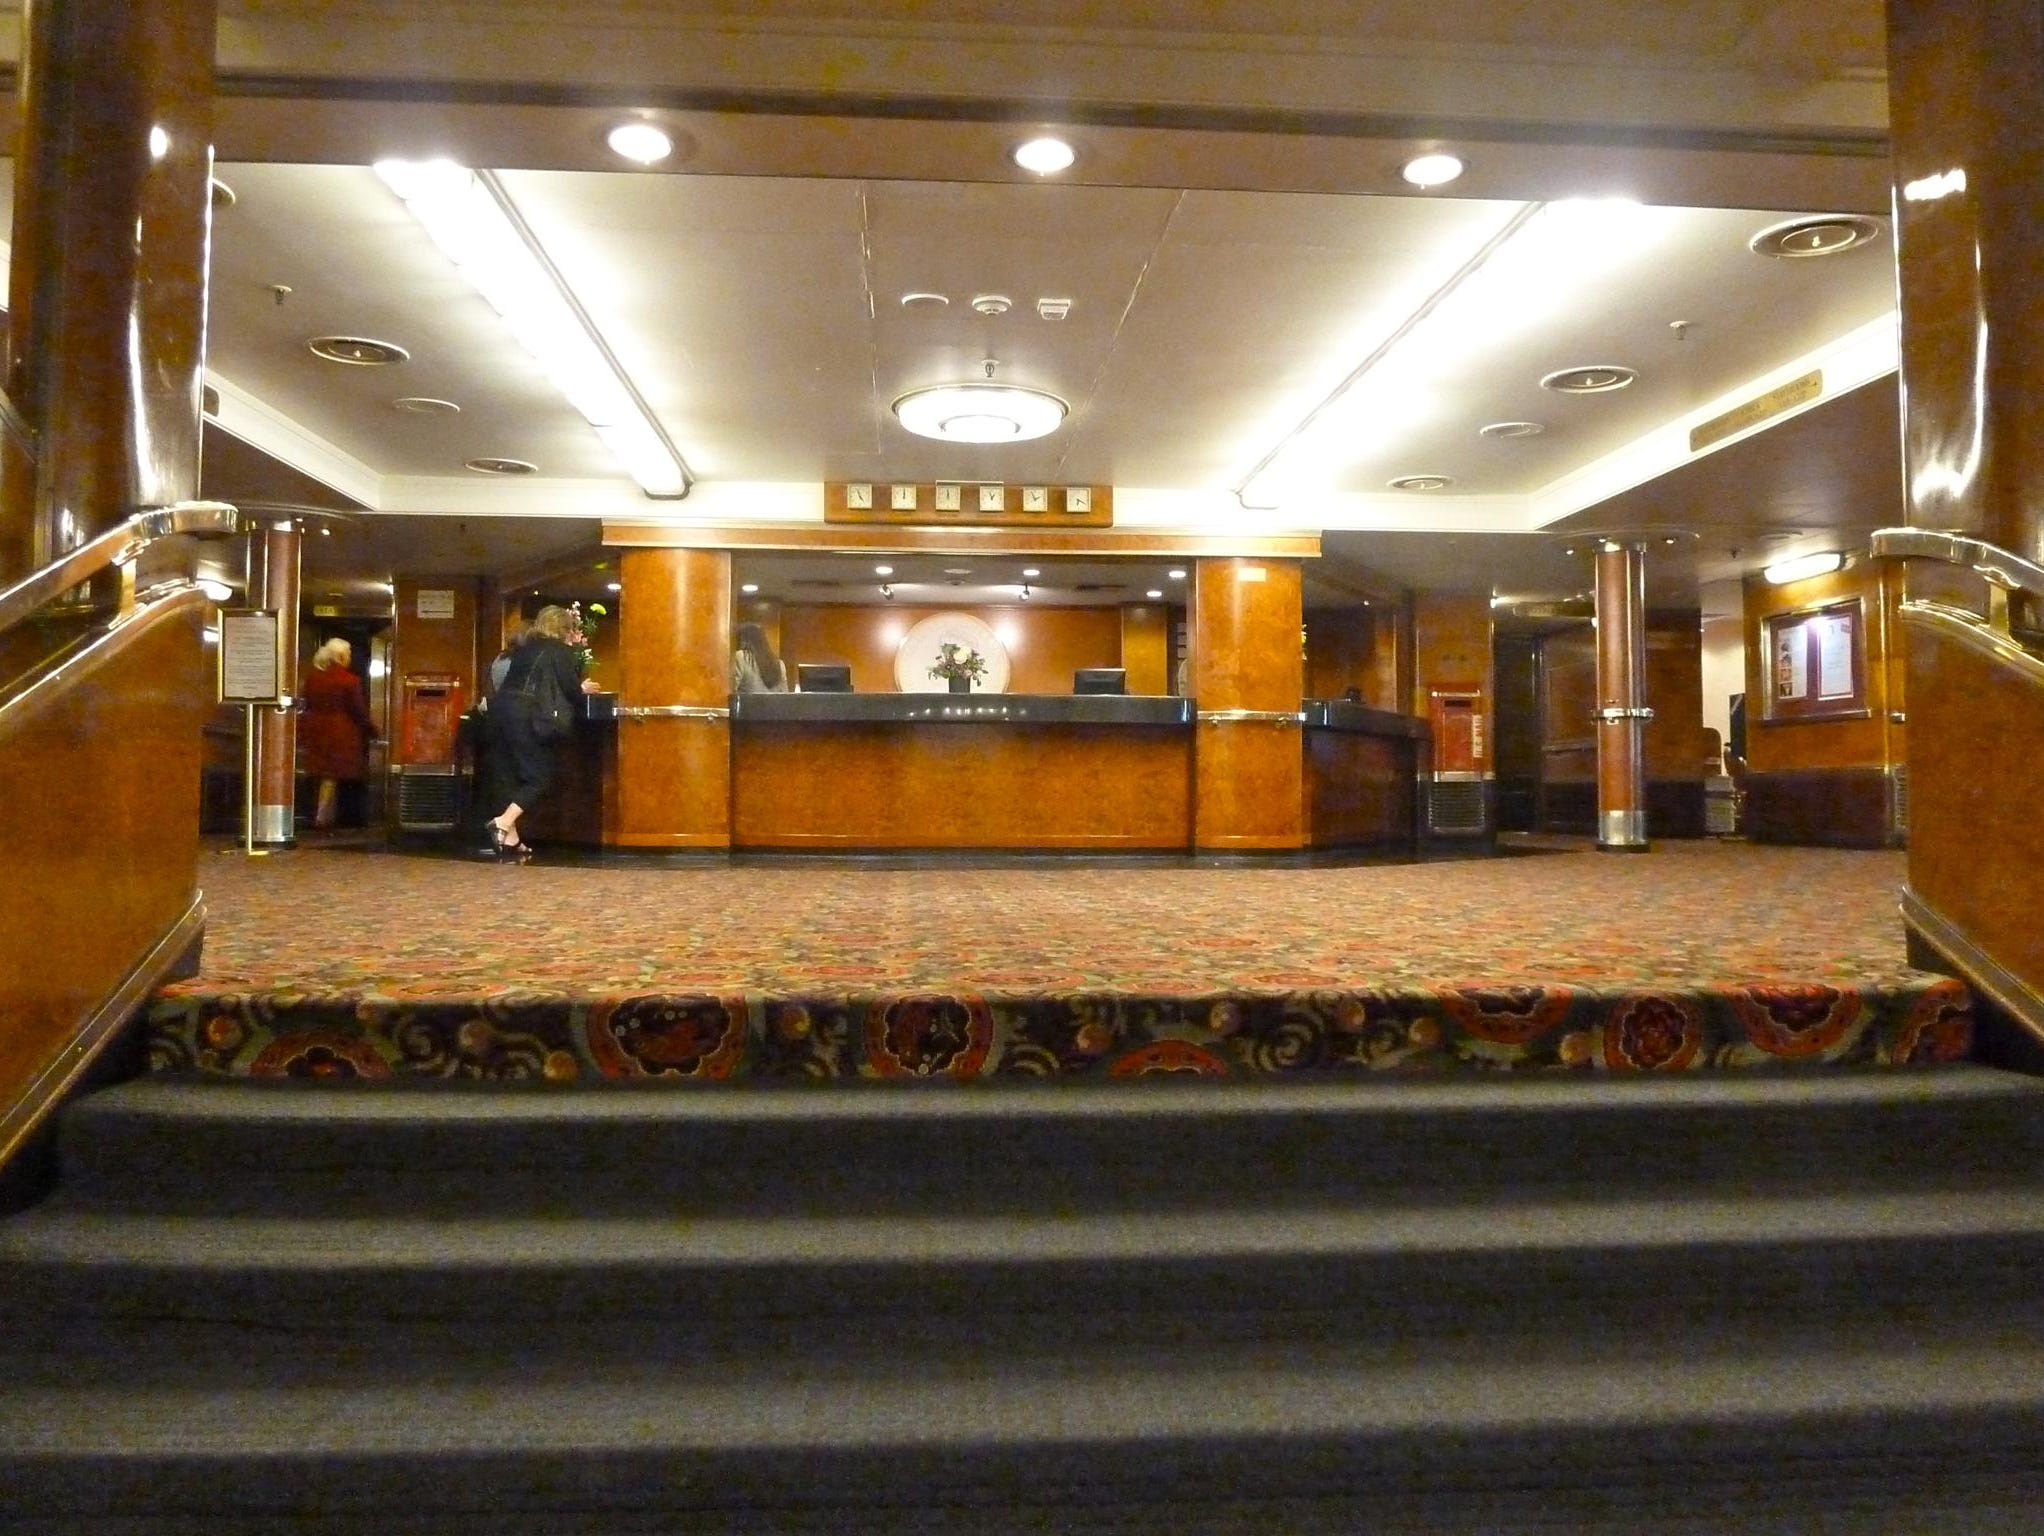 The Queen Mary Hotel Lobby and front desk is accessed from ground level by taking the elevator to level 3. This is the former first-class embarkation lobby.